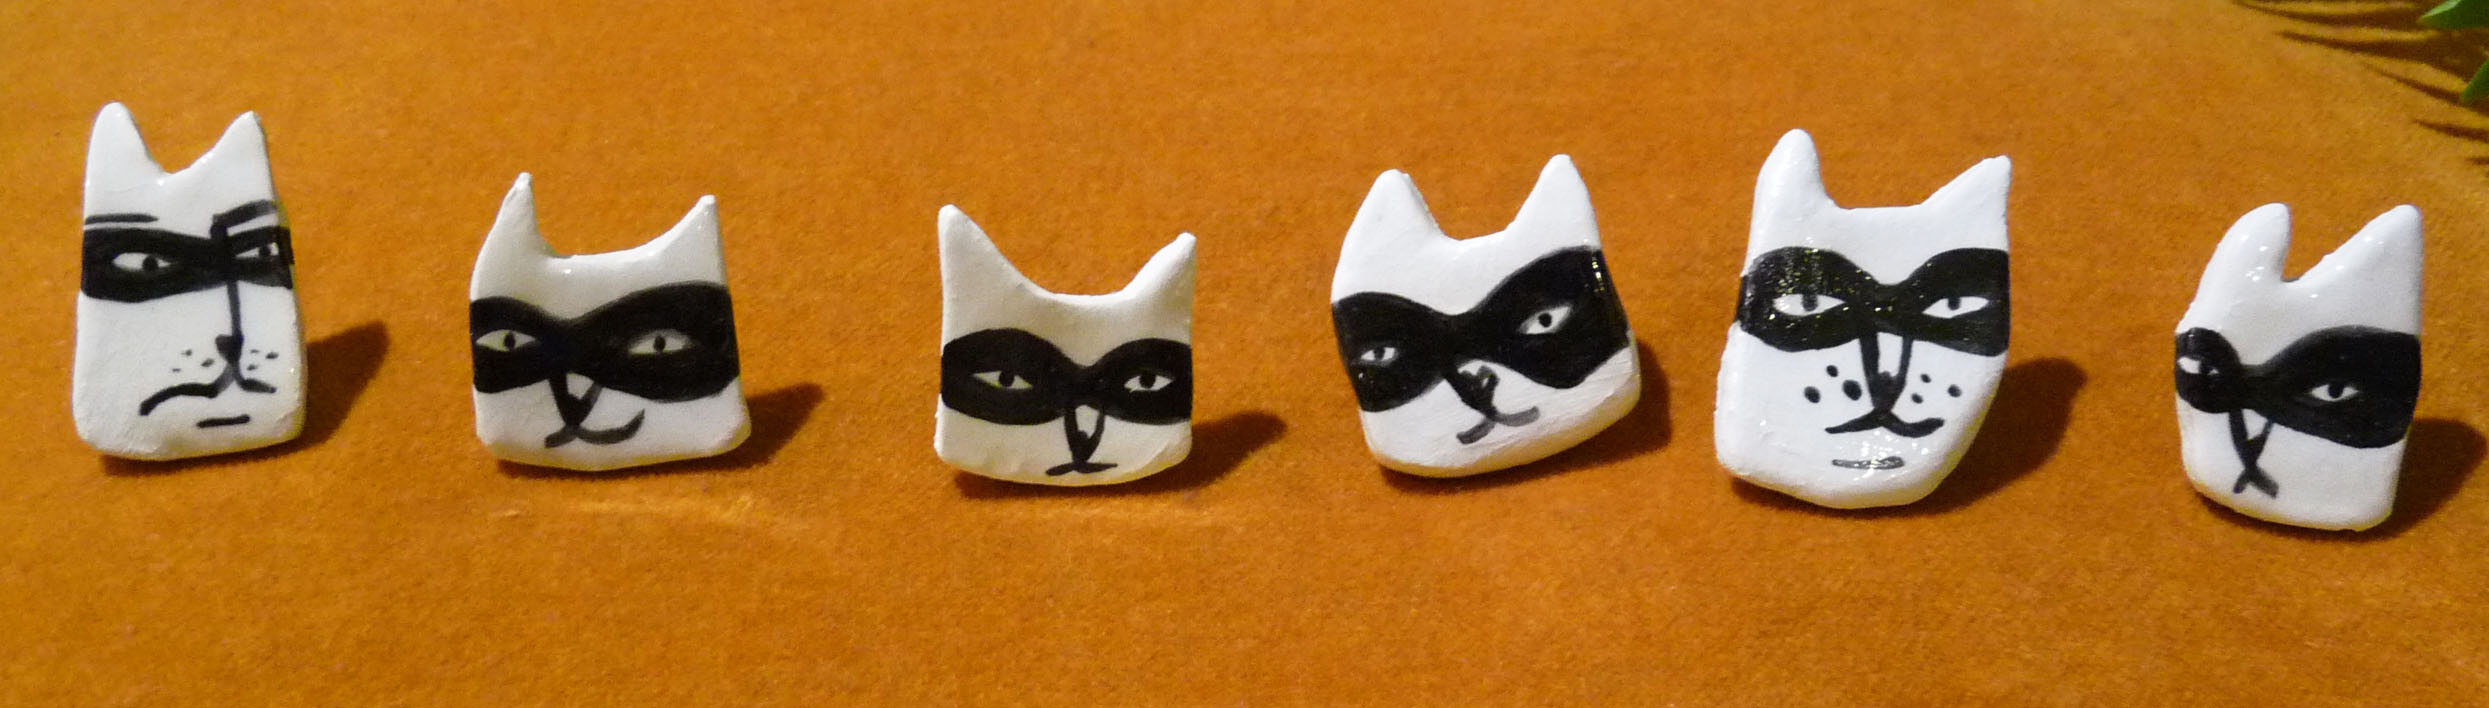 Find pins, prints and other ceramics and textiles on my shop!